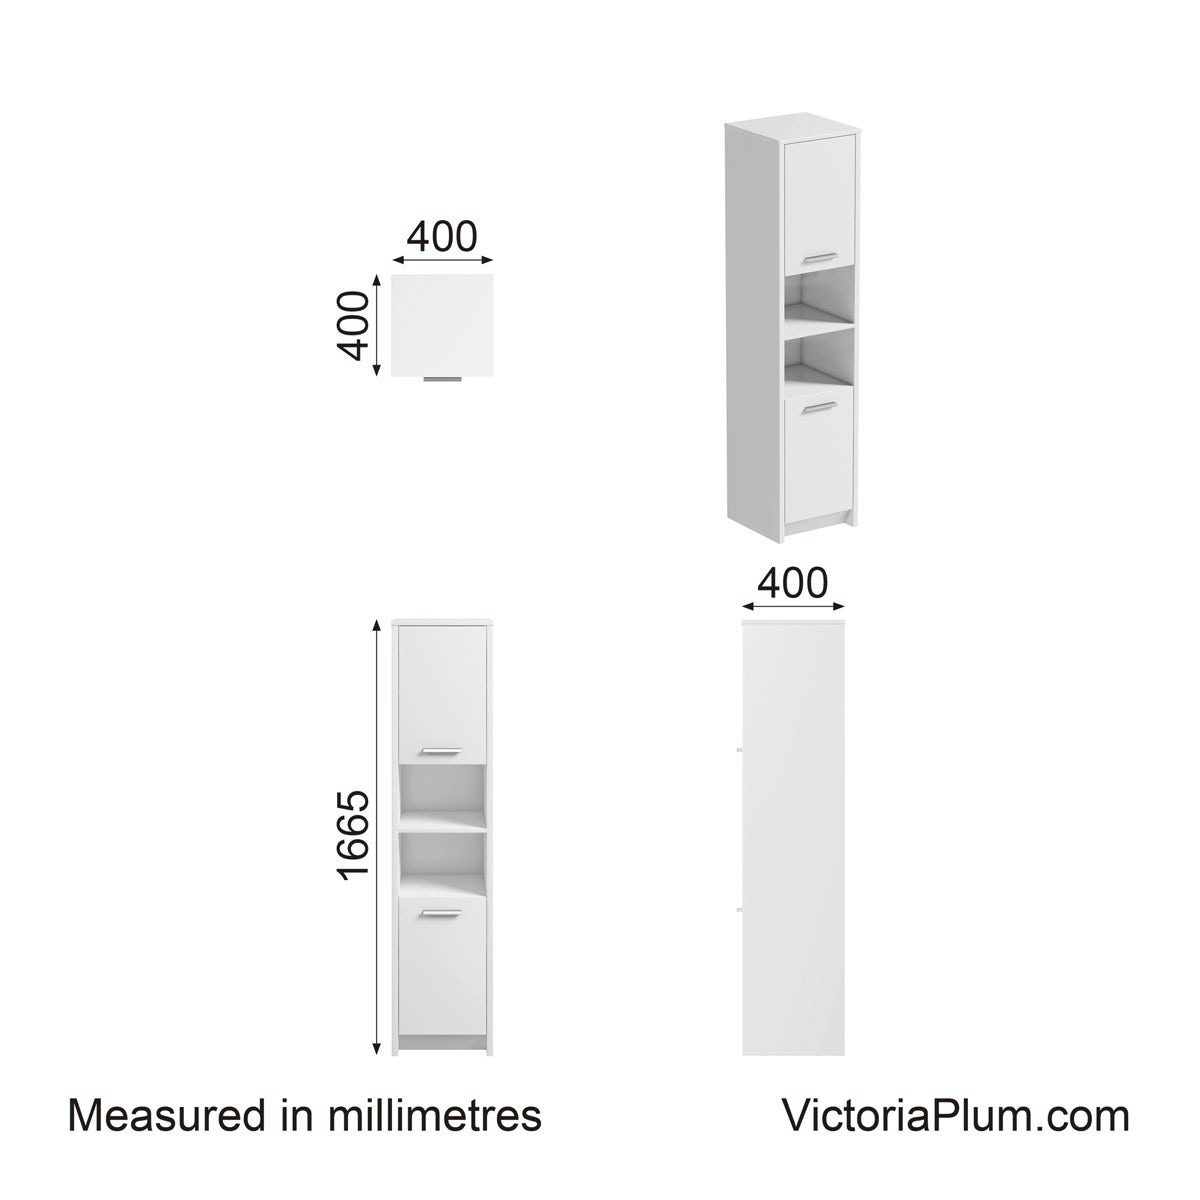 Dimensions for Clarity white floor standing tall unit